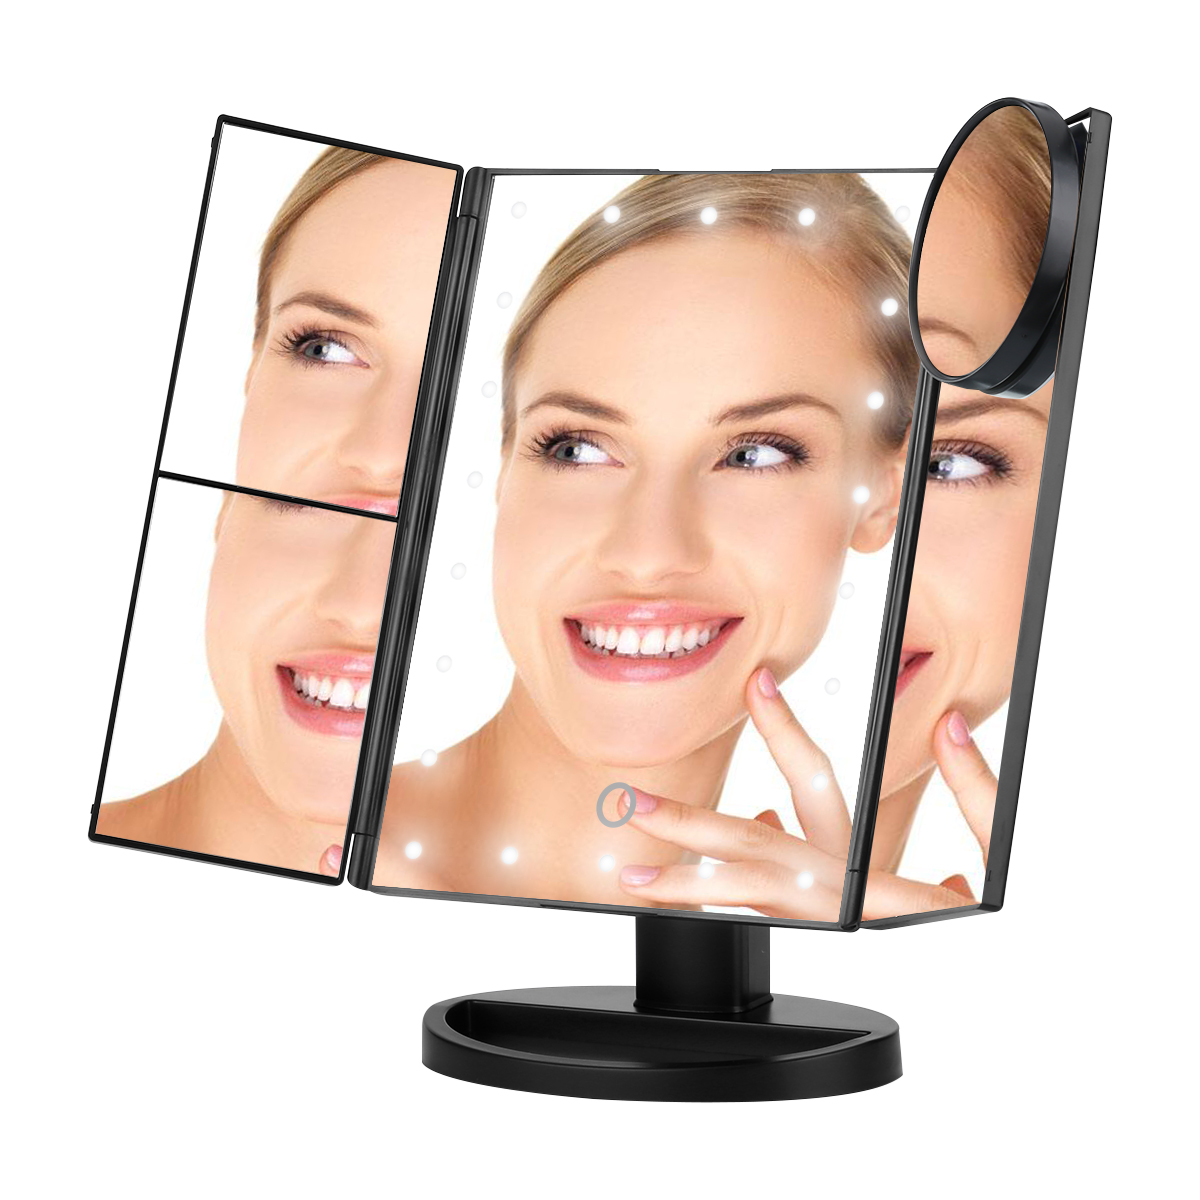 LED Cosmetic Makeup Mirror Trifold 22 LED Lighted with Touch Screen, 2x, 3x and 10x Magnifying Spot, Adjustable Stand for Countertop Bathroom